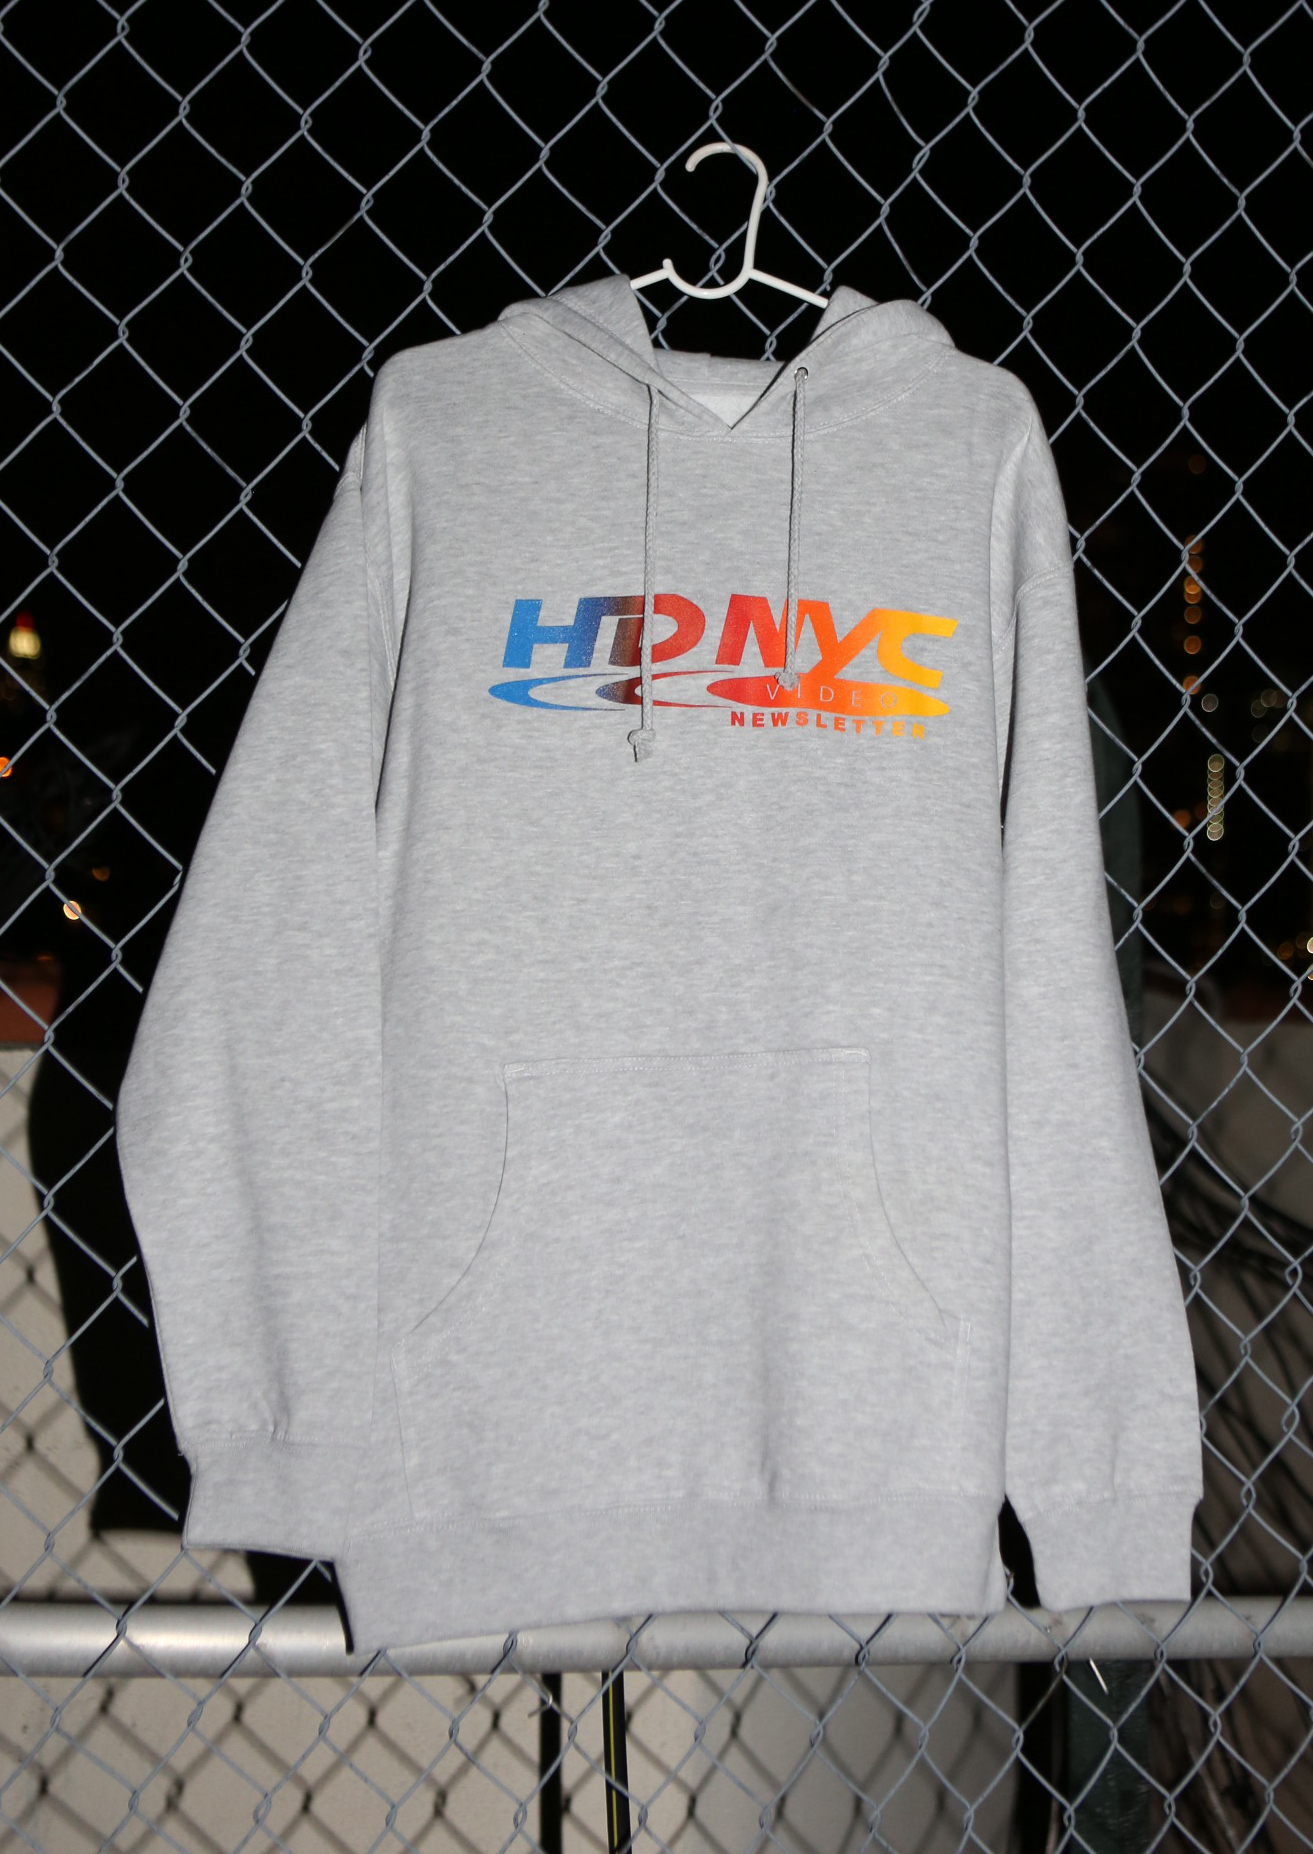 hd nyc video newsletter gray hoodie